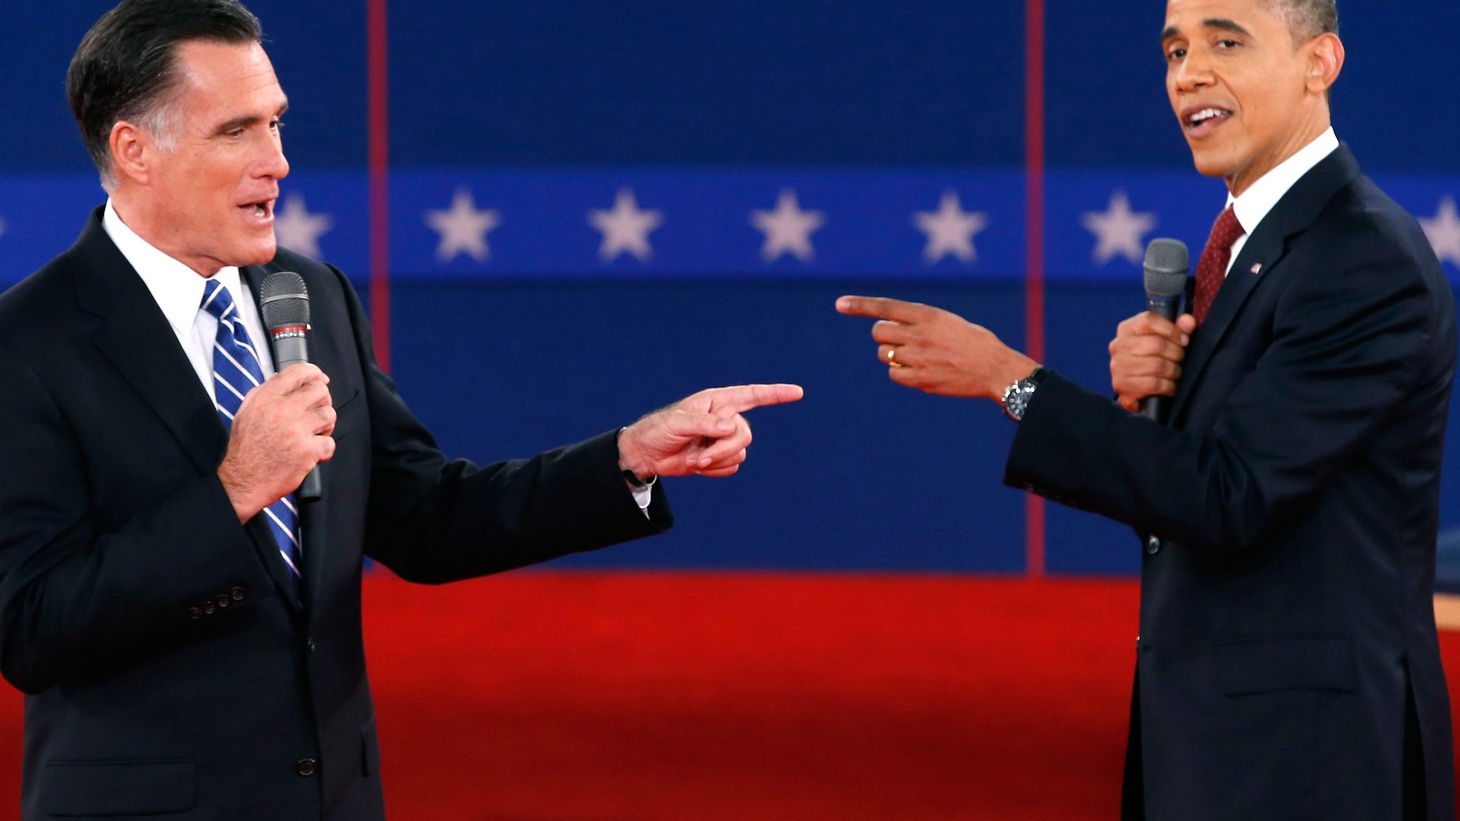 Last night's presidential debate turned into a prime-time political confrontation, this time including a president fully engaged with a challenger ready for action.